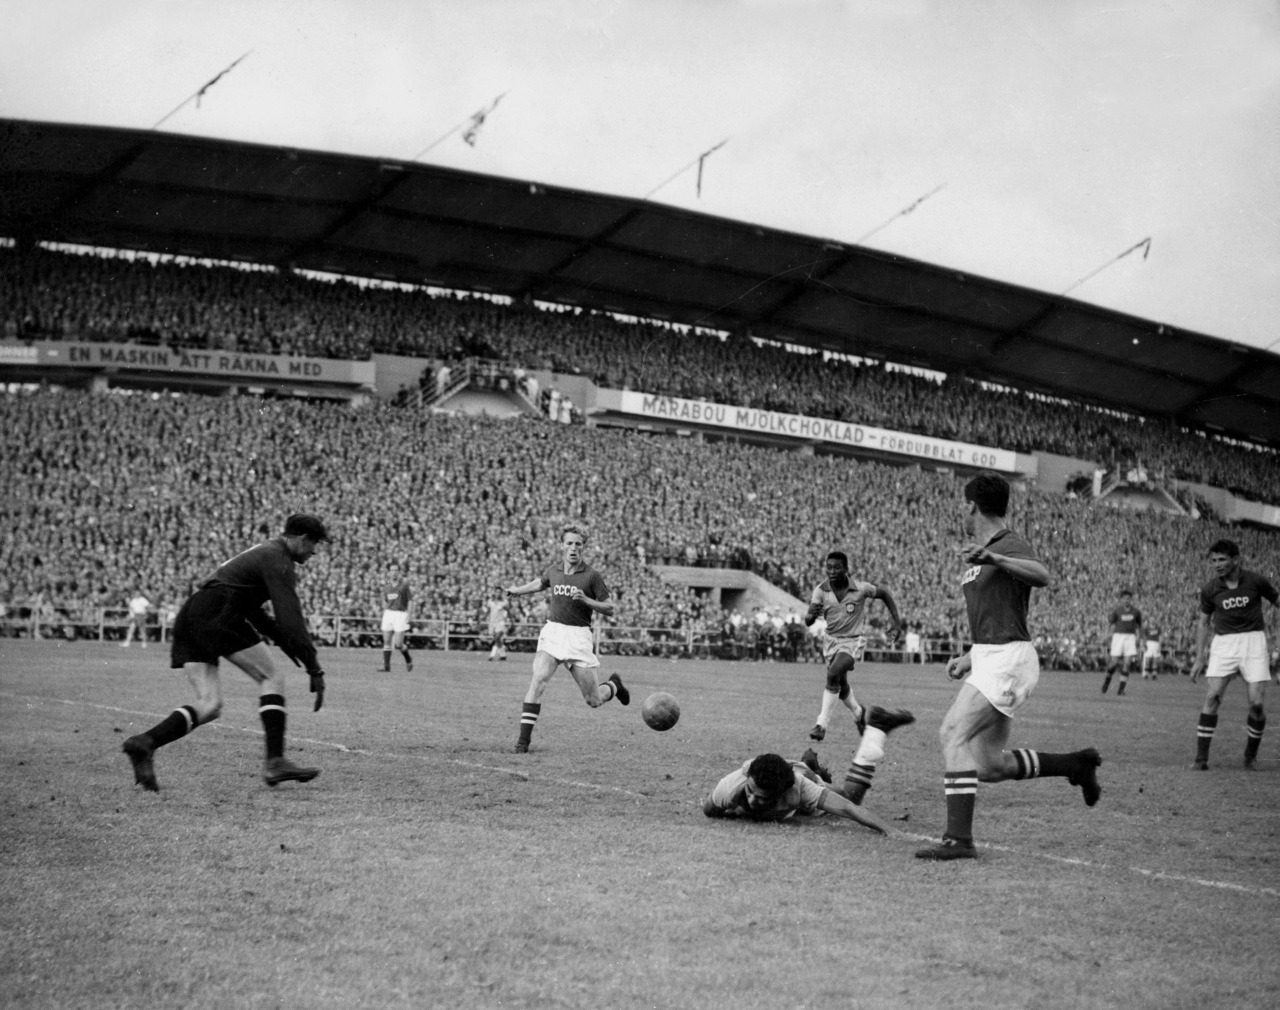 interleaning:  17-year-old Pele and Lev Yashin, 1958 World Cup.